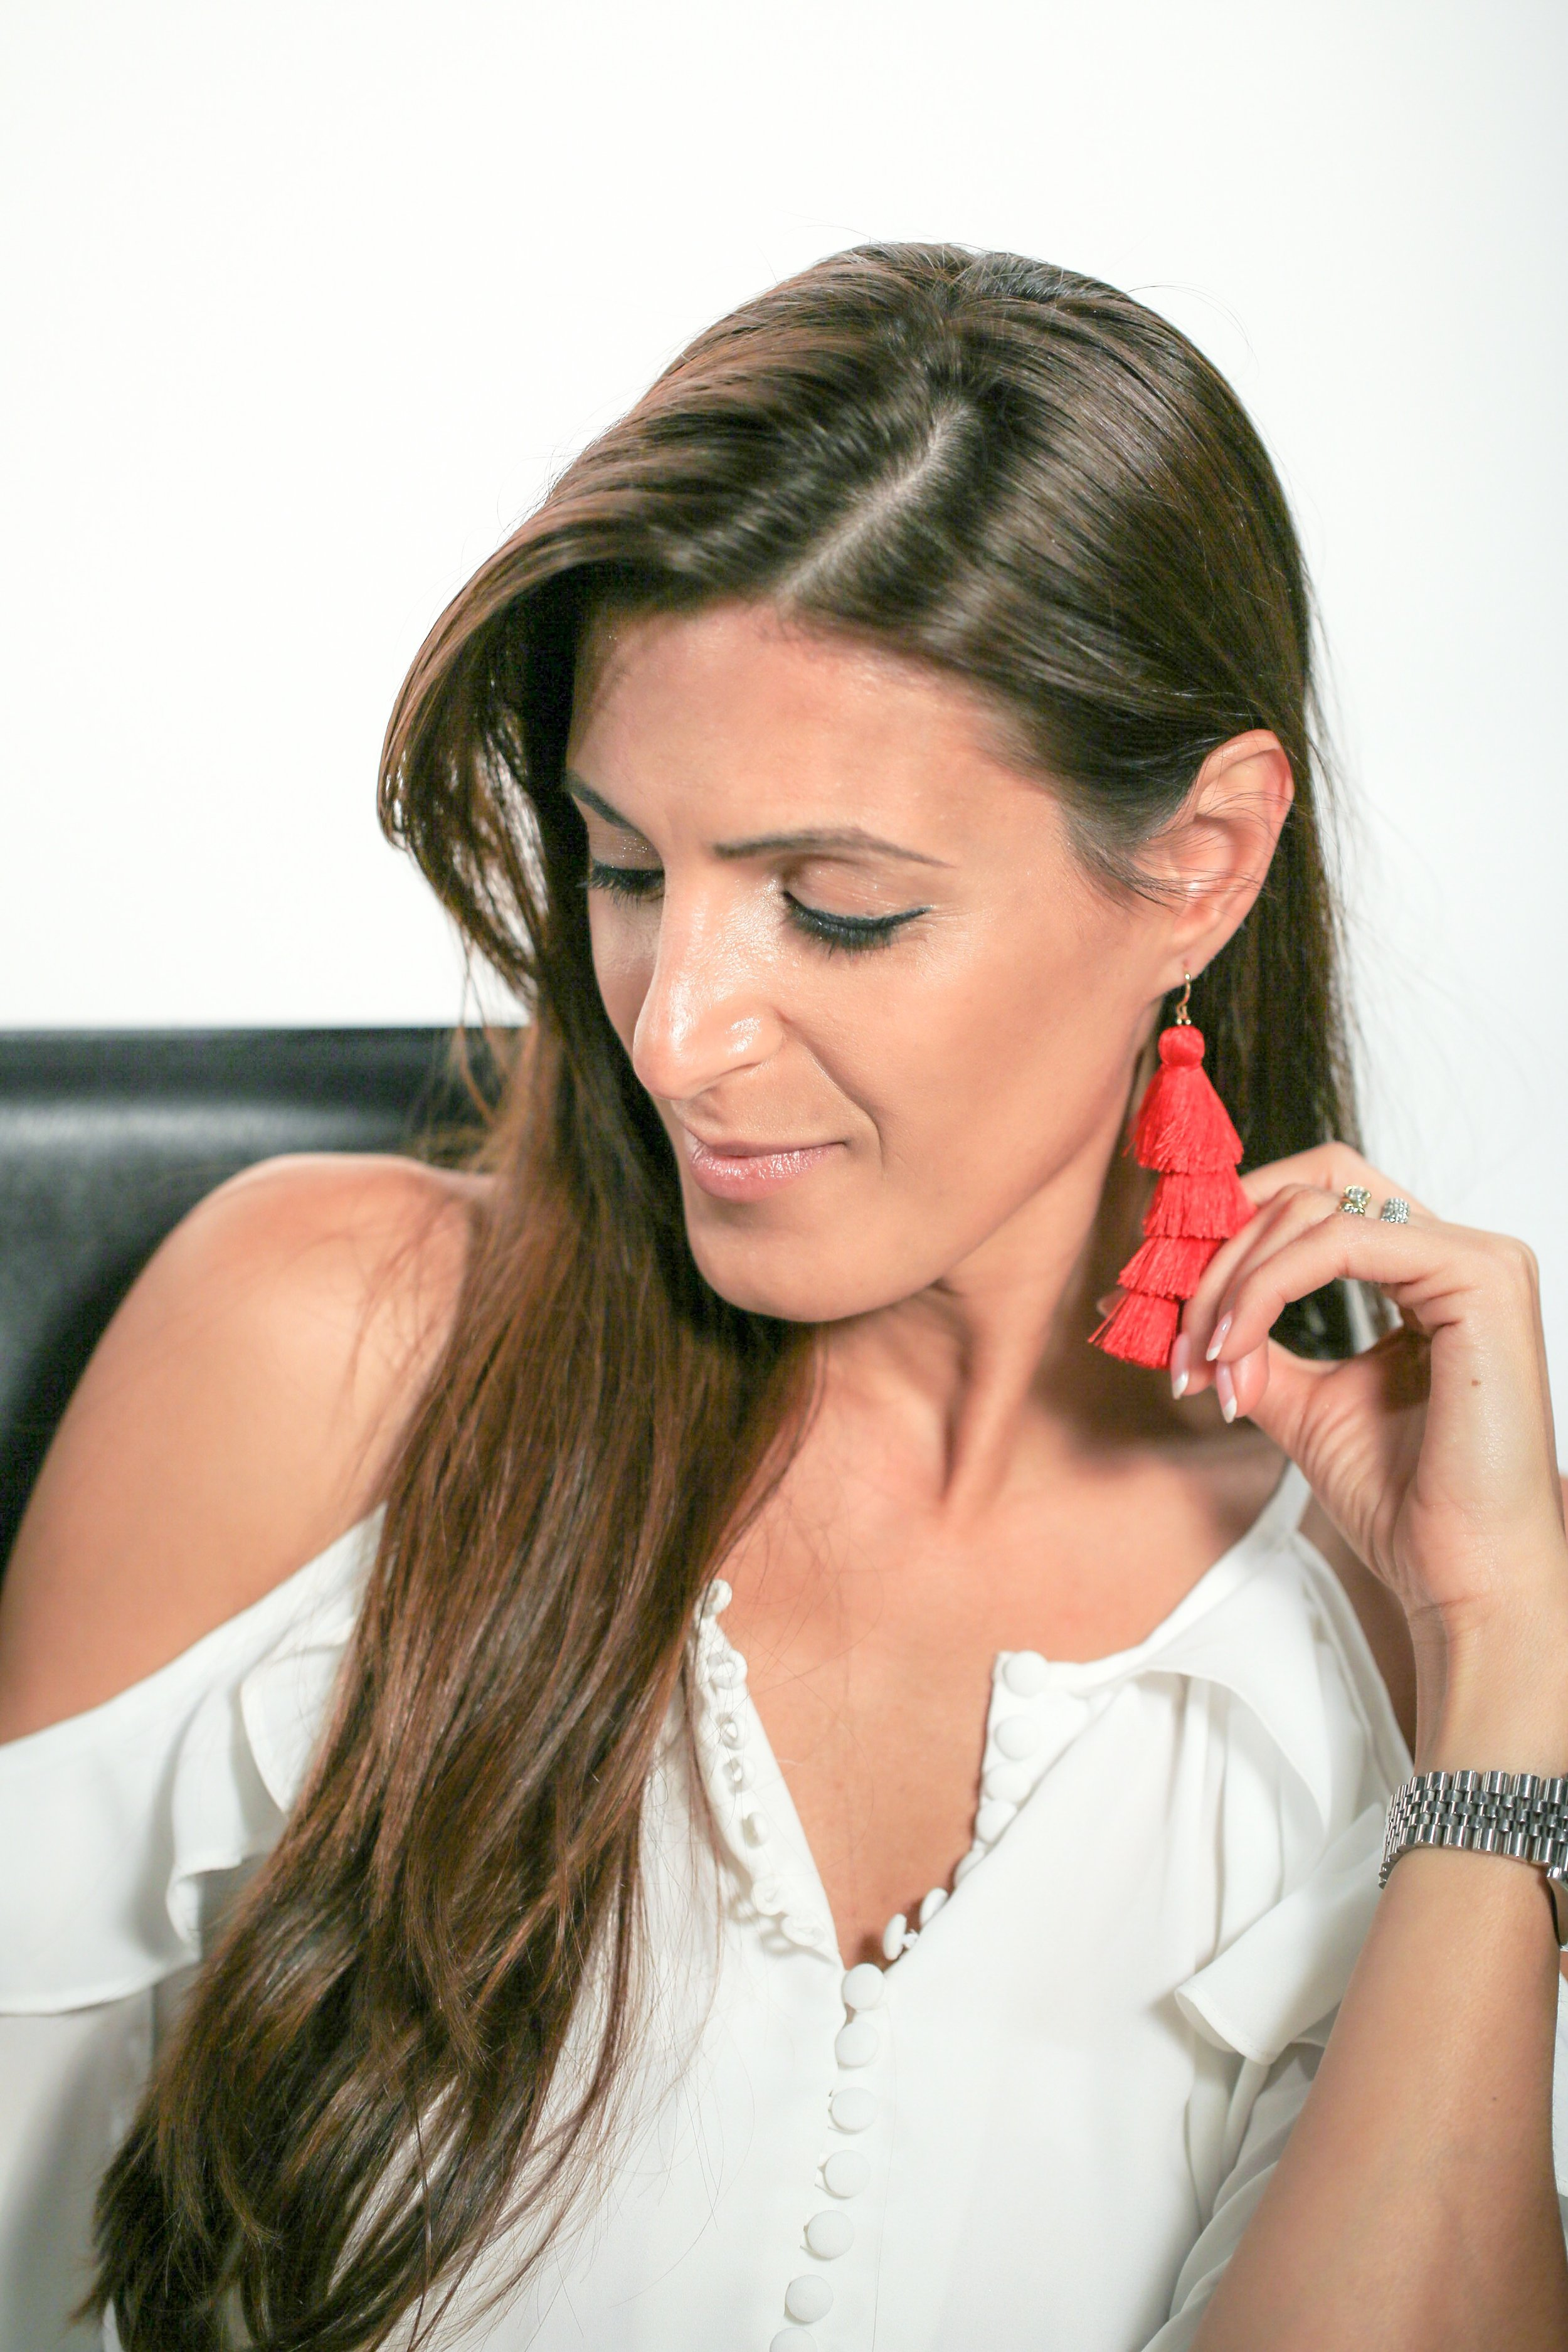 GUYSSSSSSS!Everyone MUST own a pair of  tassels  this summer and I mean EVERYONE! They are the most playful 'in the moment' coveted statement earring this summer and they are show stoppers!